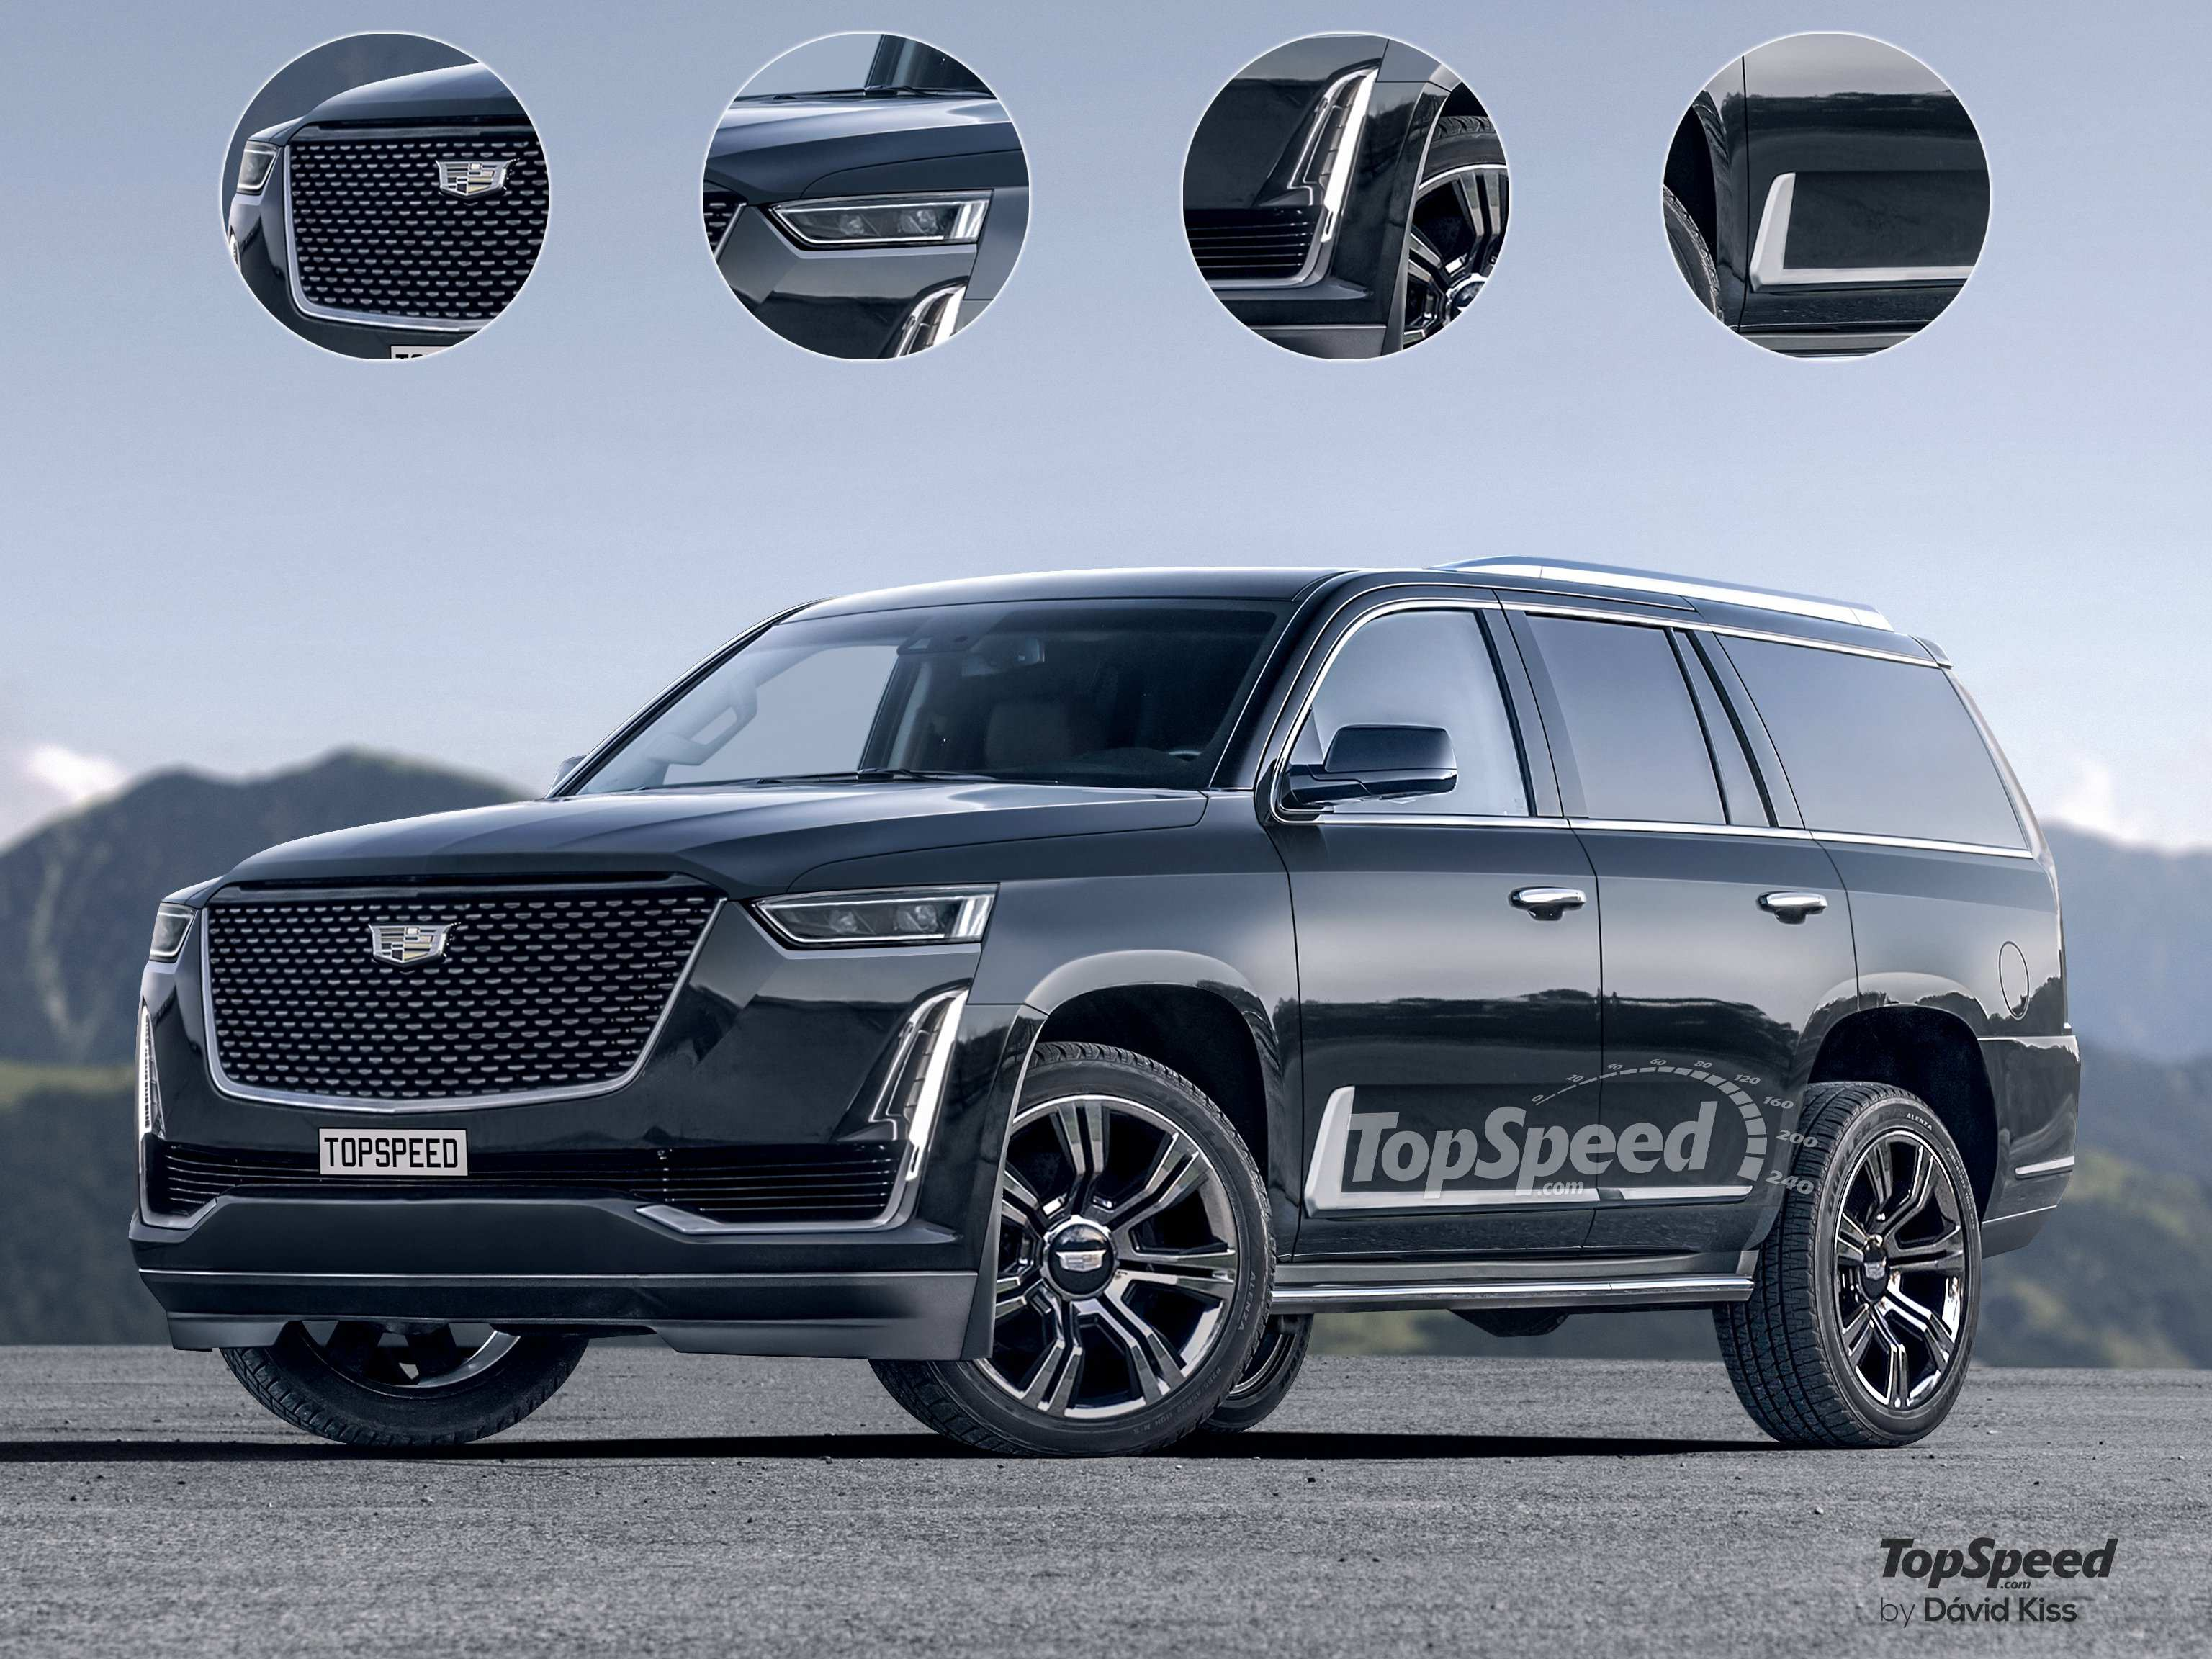 95 New 2020 Cadillac Escalade White Style by 2020 Cadillac Escalade White